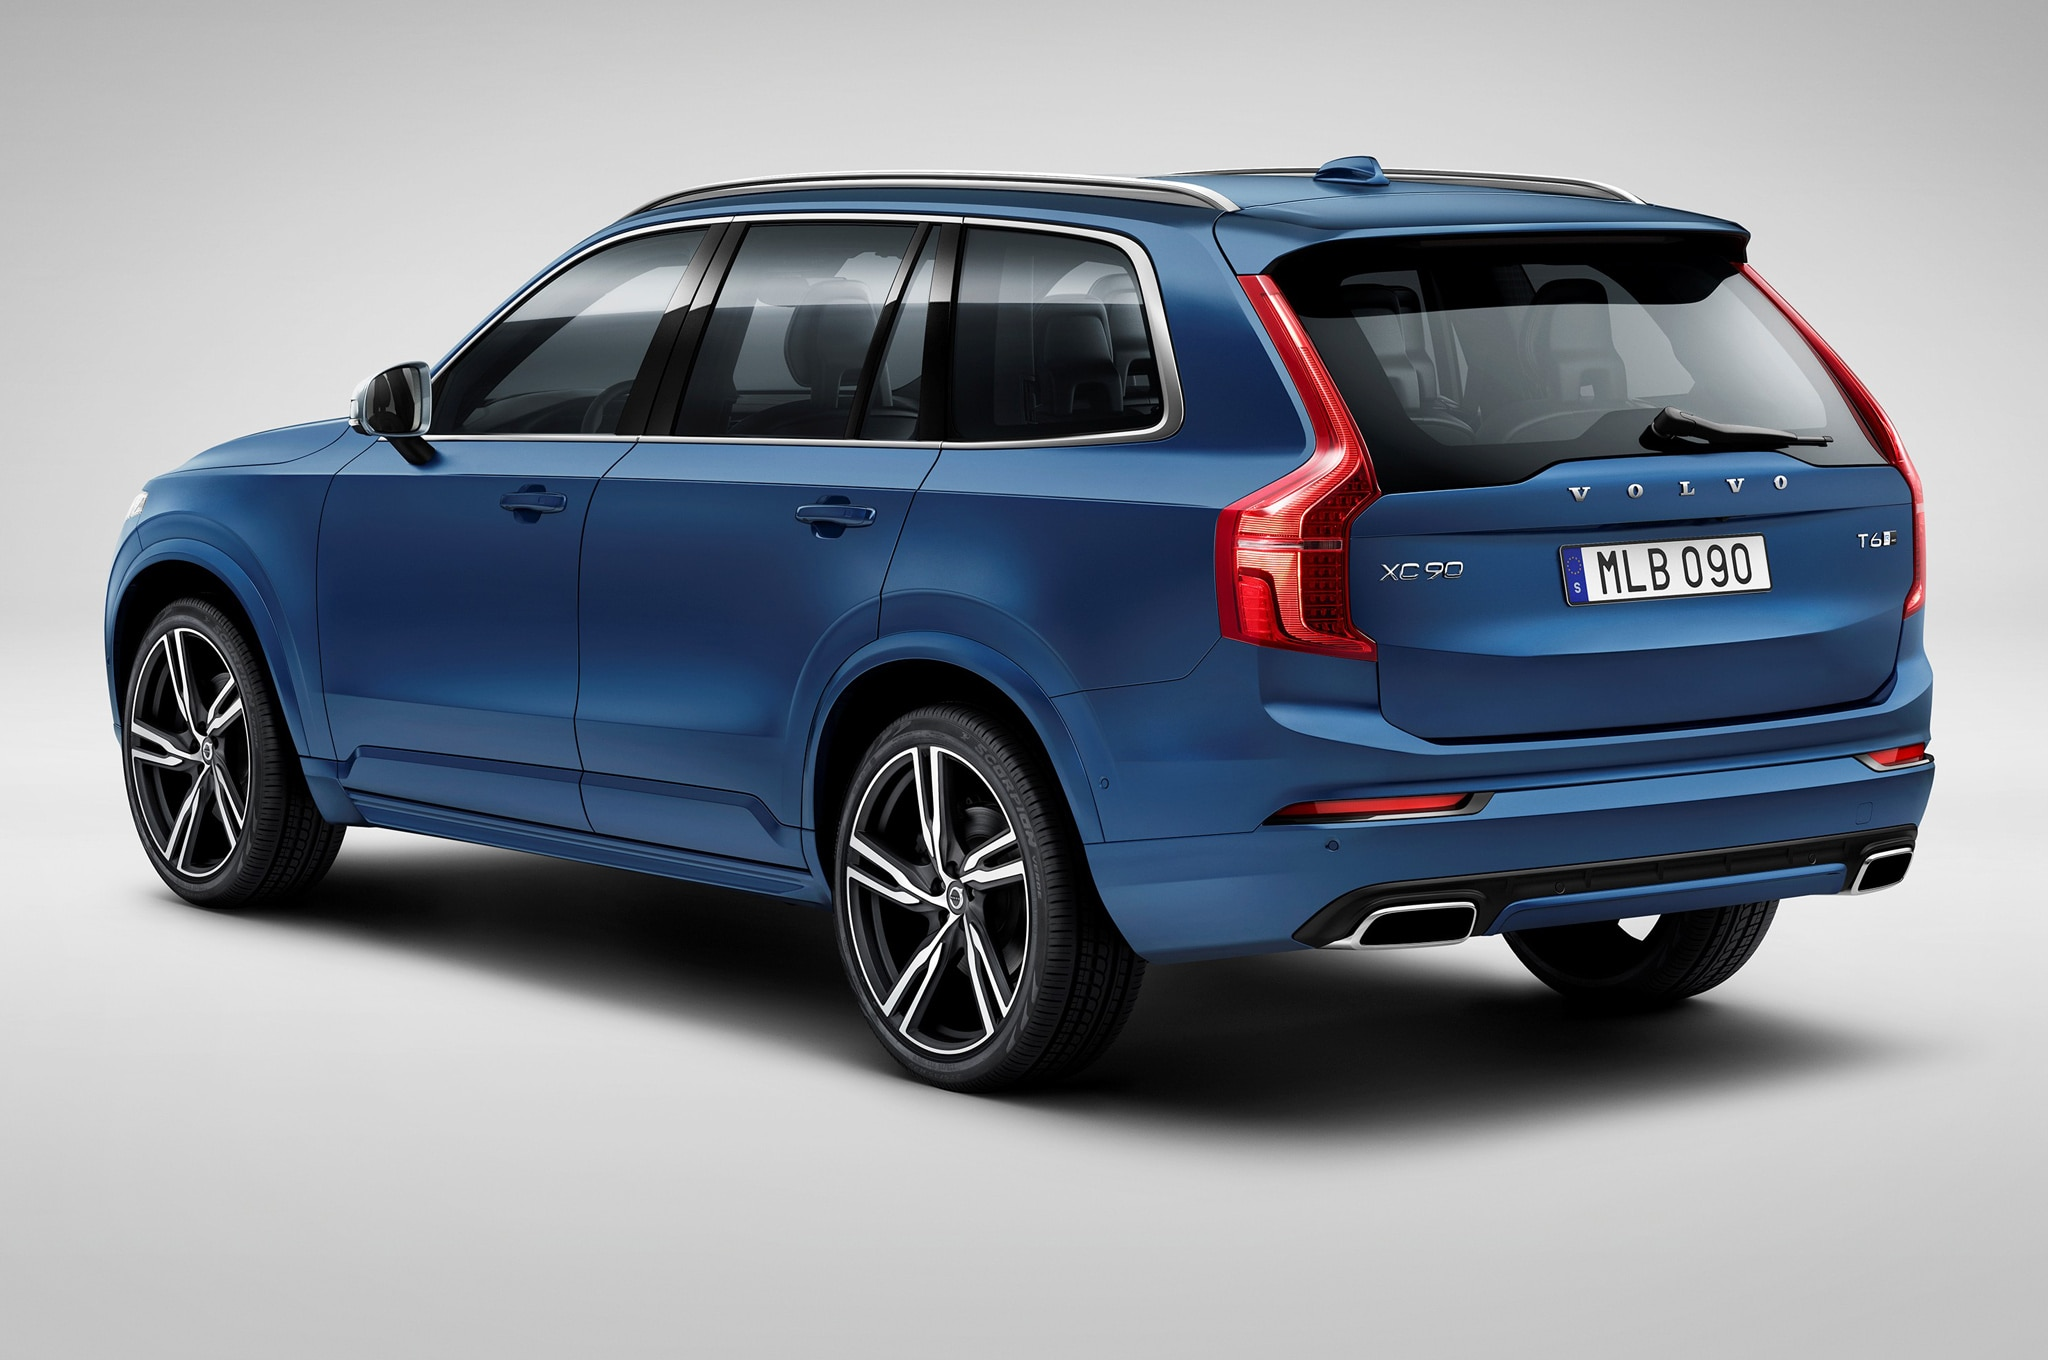 Volvo xc90 r design one week with 2016 volvo xc90 t6 awd r design